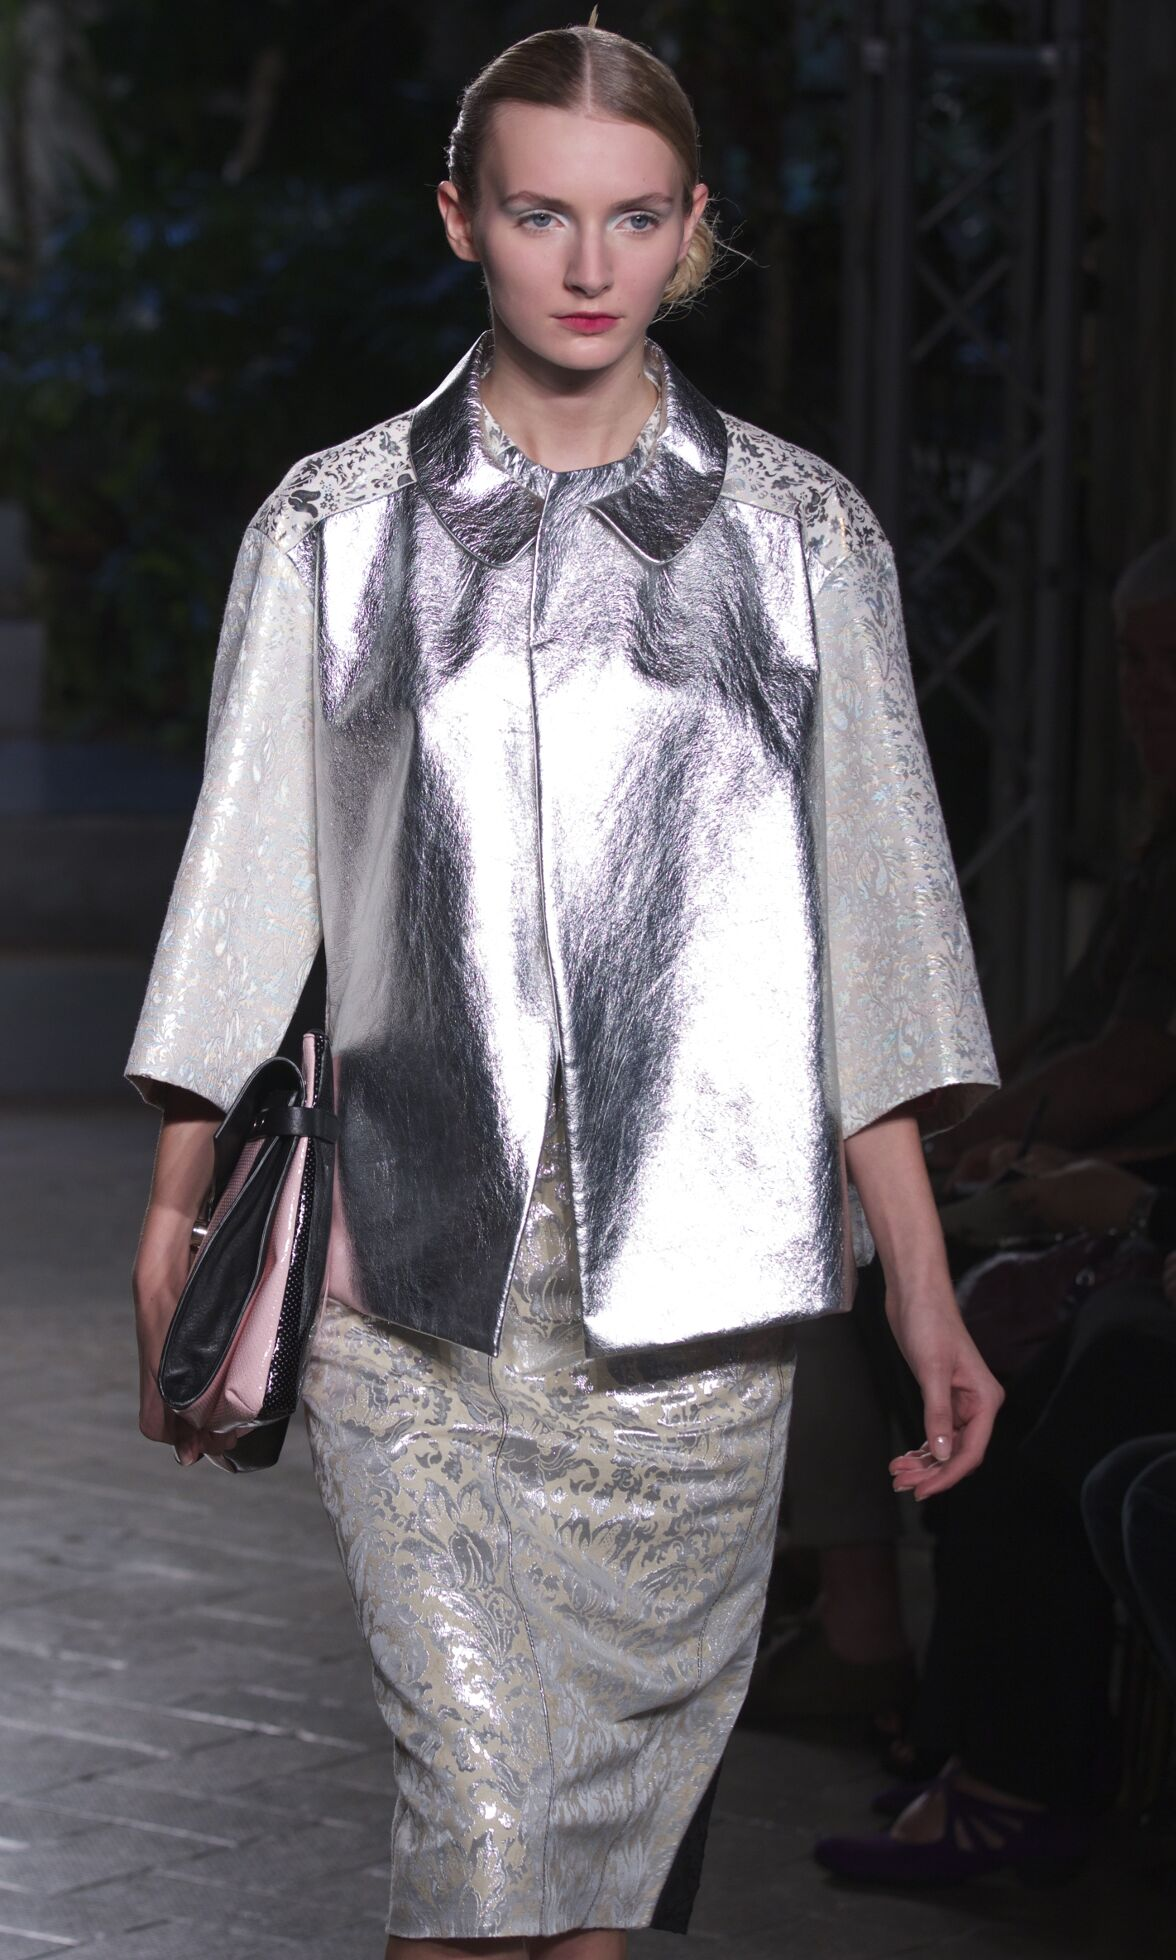 Antonio Marras Spring 2014 Catwalk